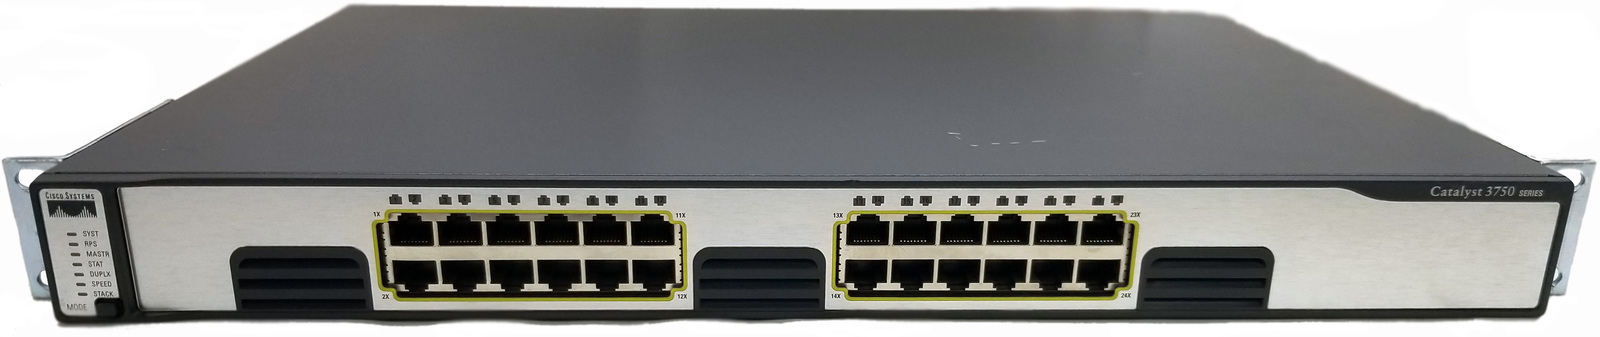 Cisco WS-C3750G-24T-S V07 24 Port Gigabit Switch